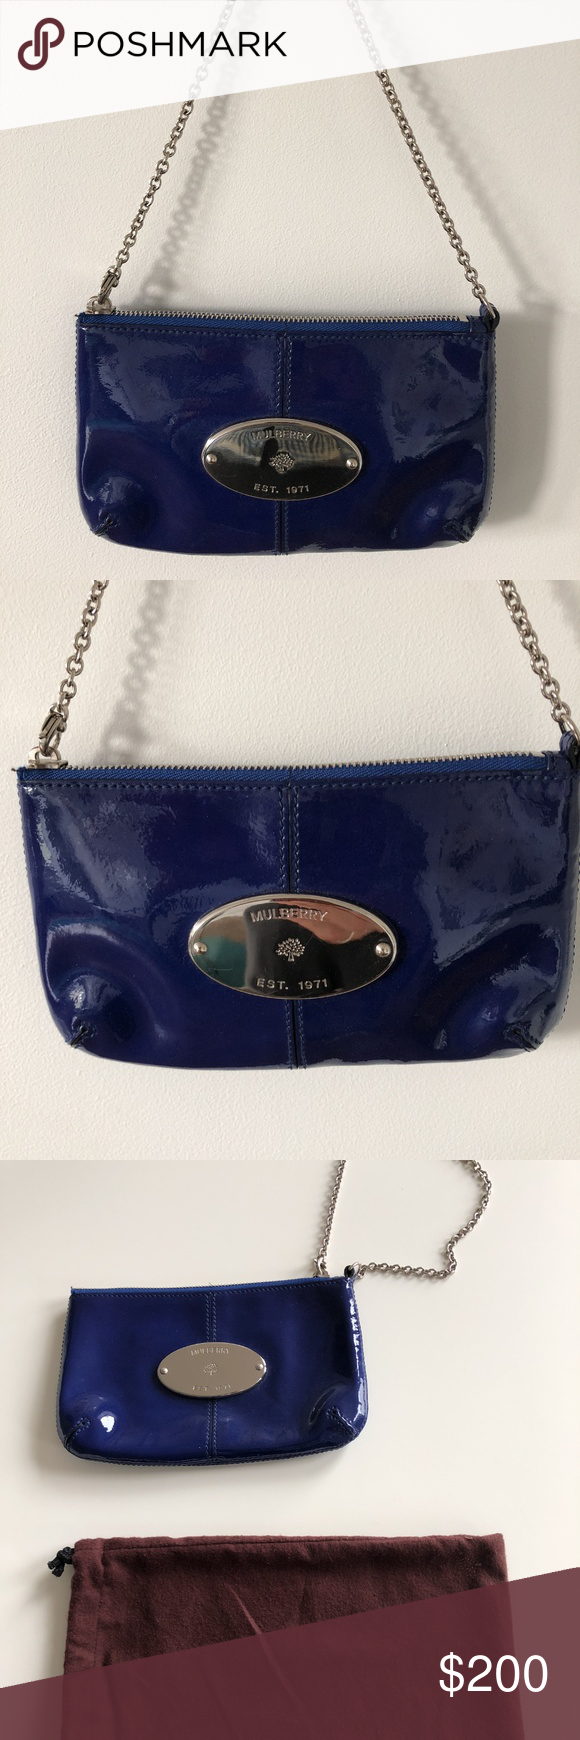 Mulberry Bright blue patent-leather small chain should bag pouch. Easily  fits party essentials  phone b9dd6e1fe65fb